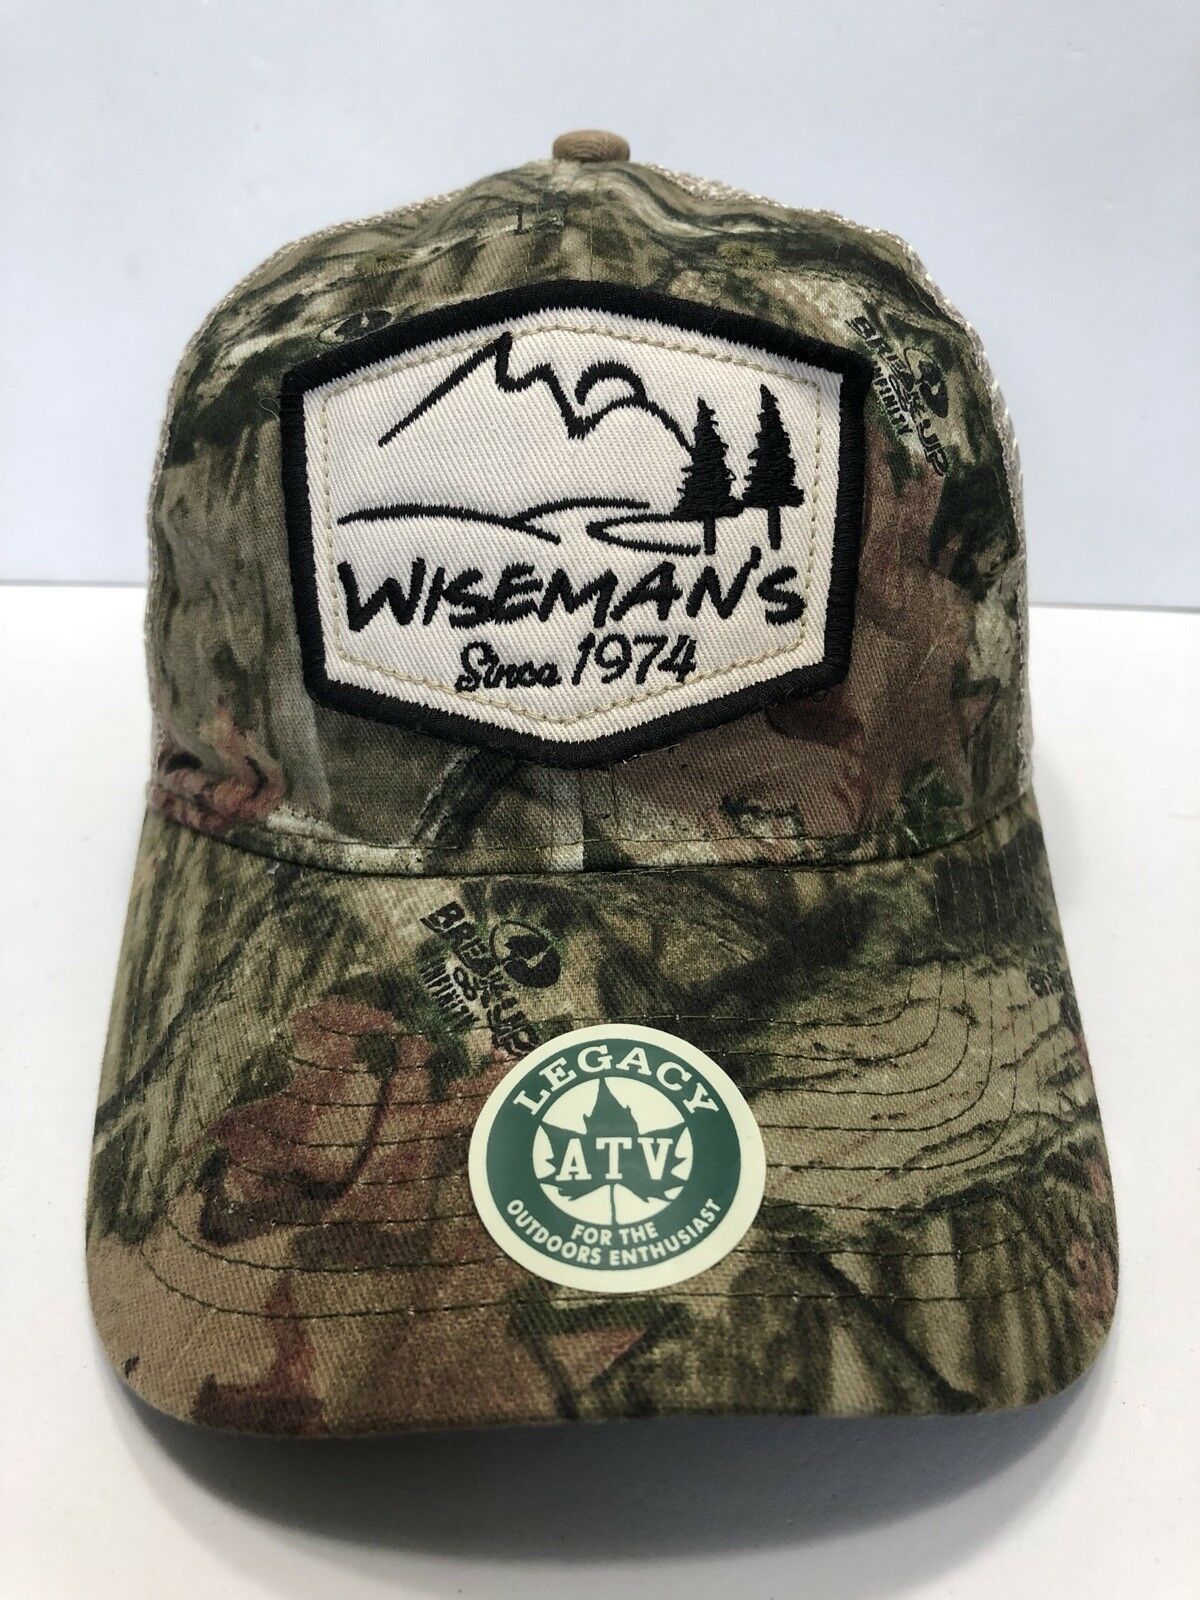 b8094dd1159 ... wholesale wisemans since 1974 hunter cap cotton hat trucker camo  snapback cotton cap polyester 81c43d c6f0a